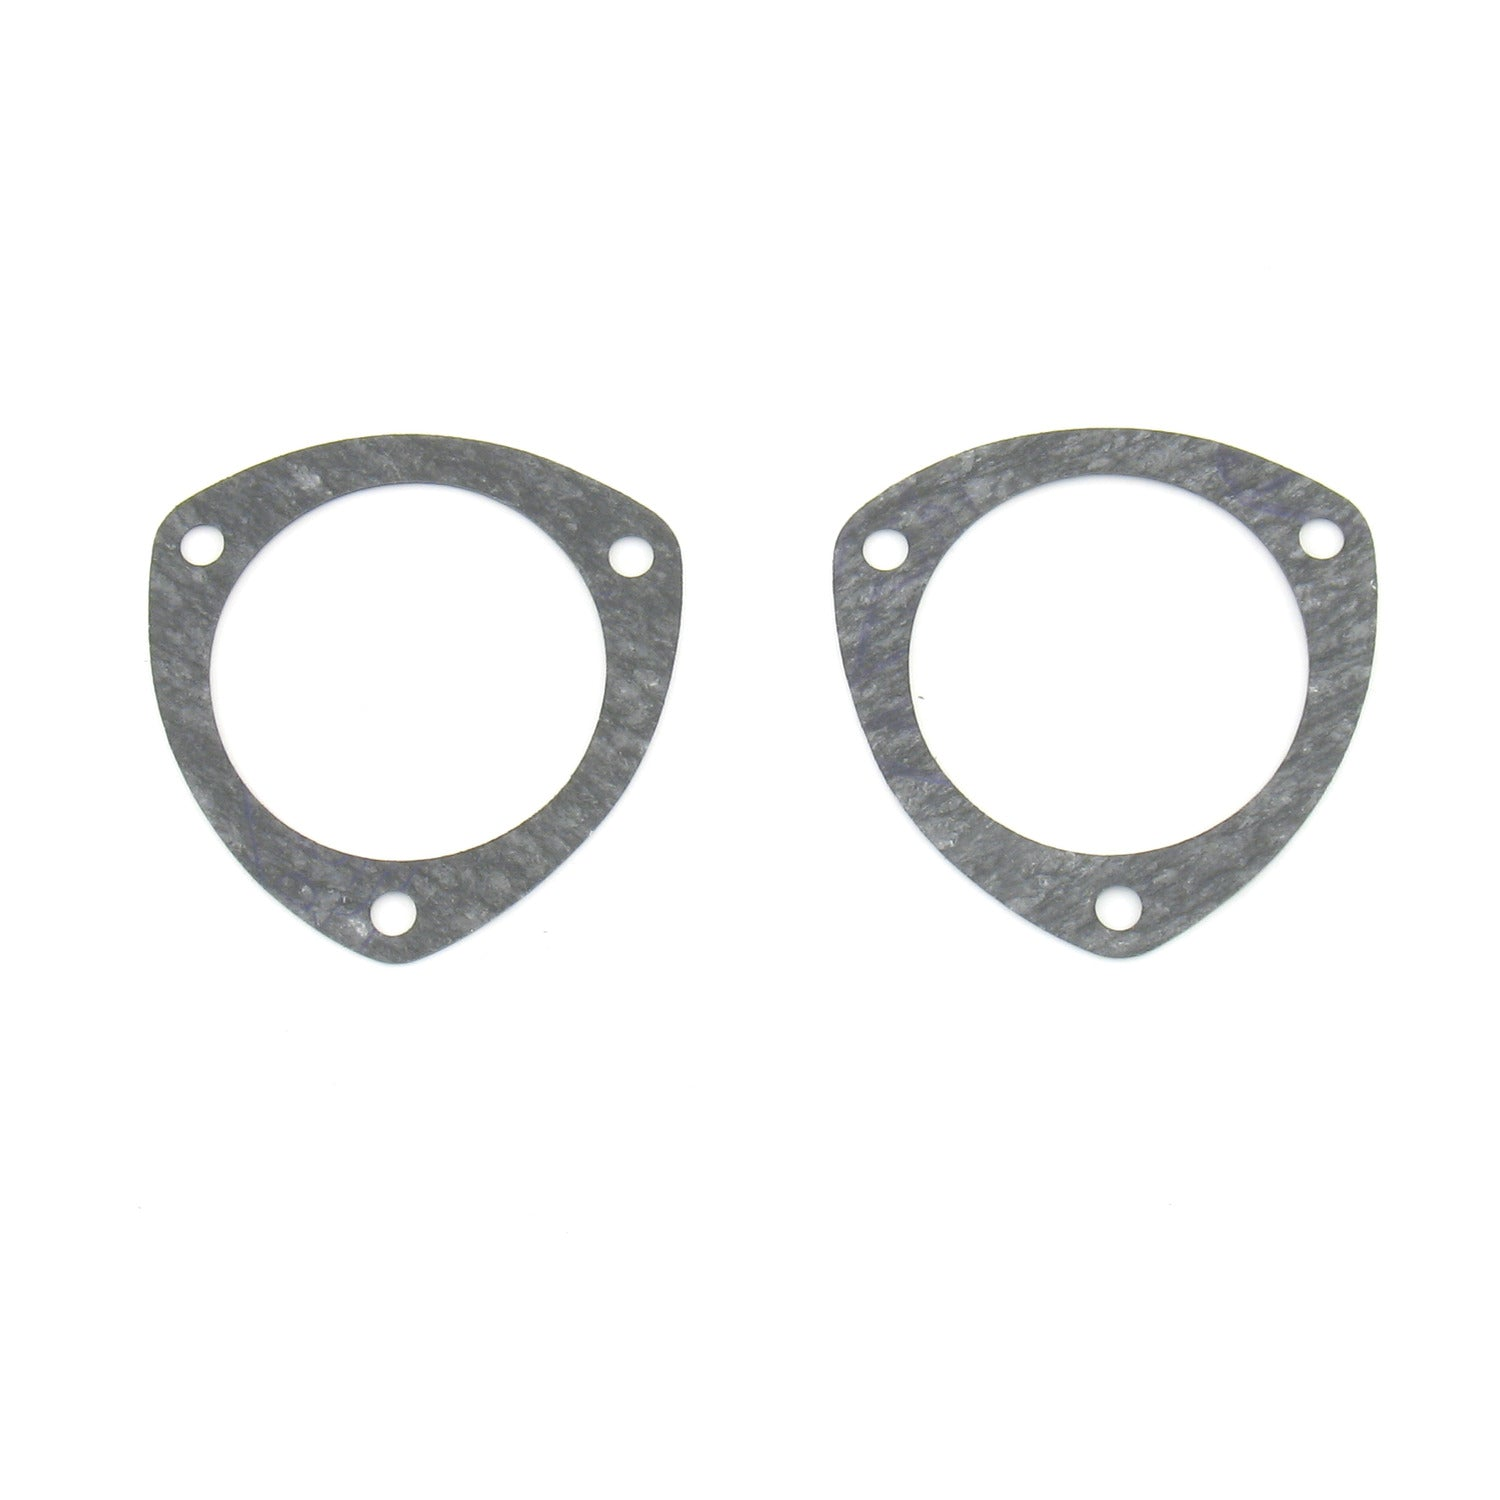 "Doug's Headers CG9007 3 bolt 3 1/2"" Collector Gaskets"